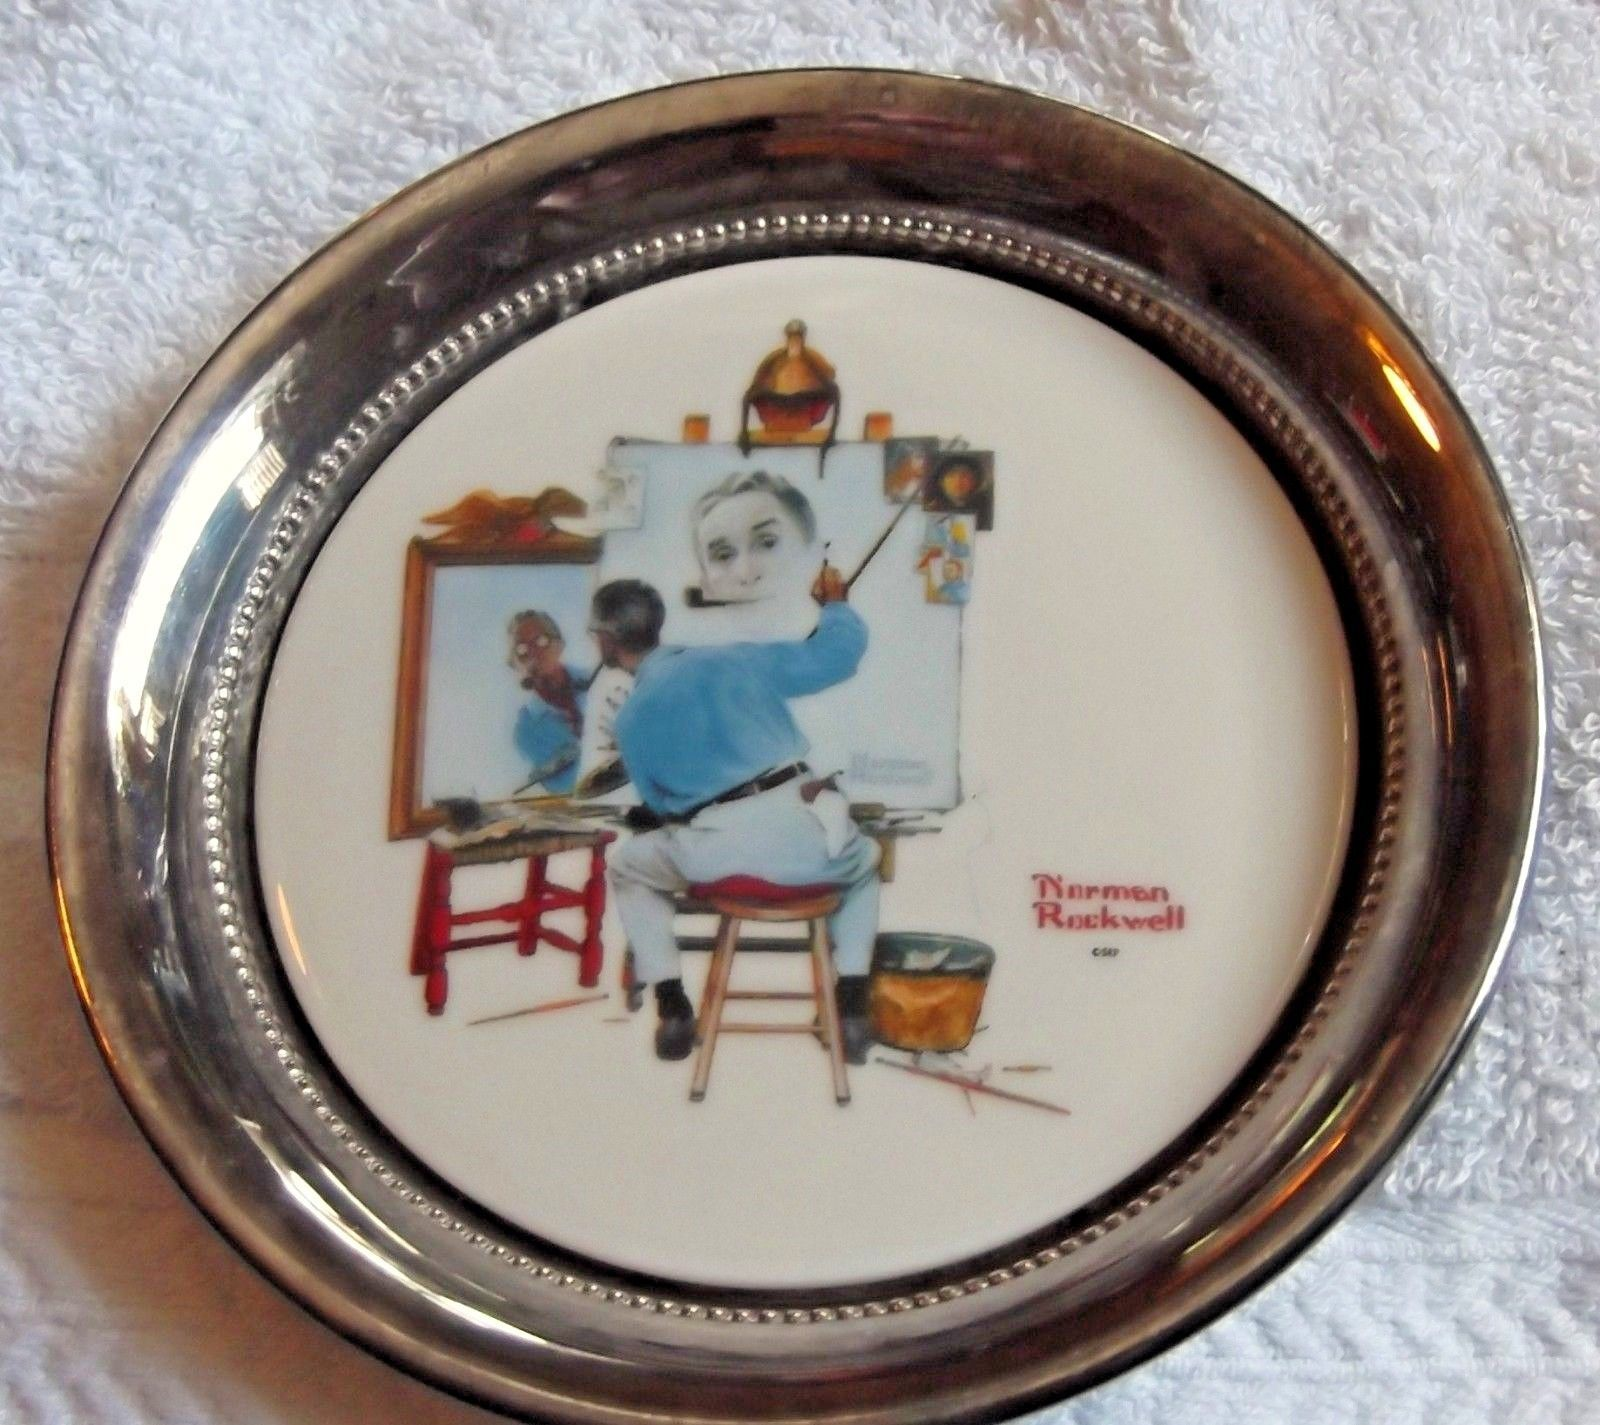 Norman Rockwell Gorham Collector Society and 50 similar items